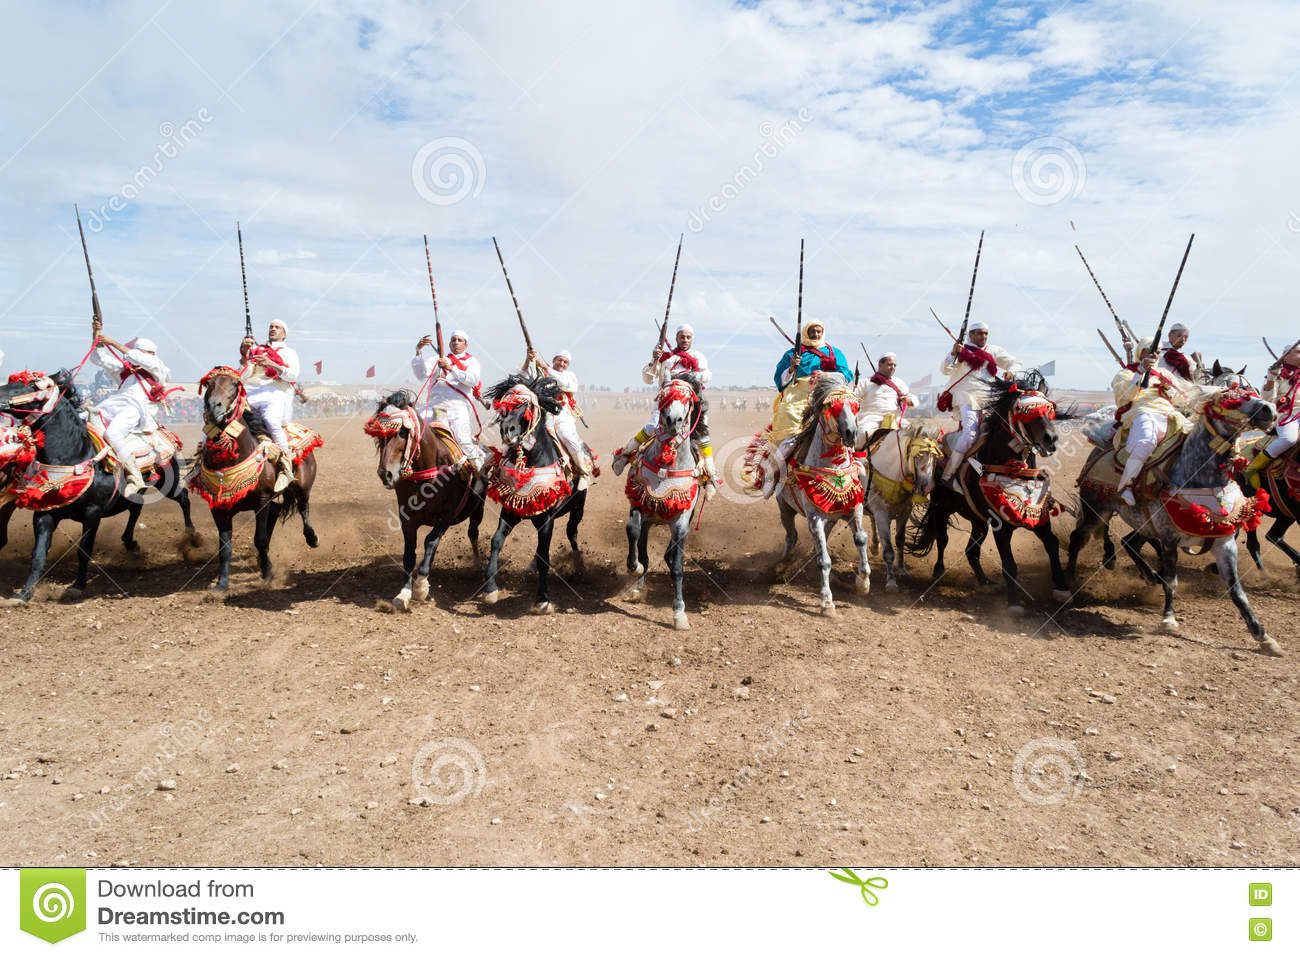 Moroccan horse riders in Fantasia performance